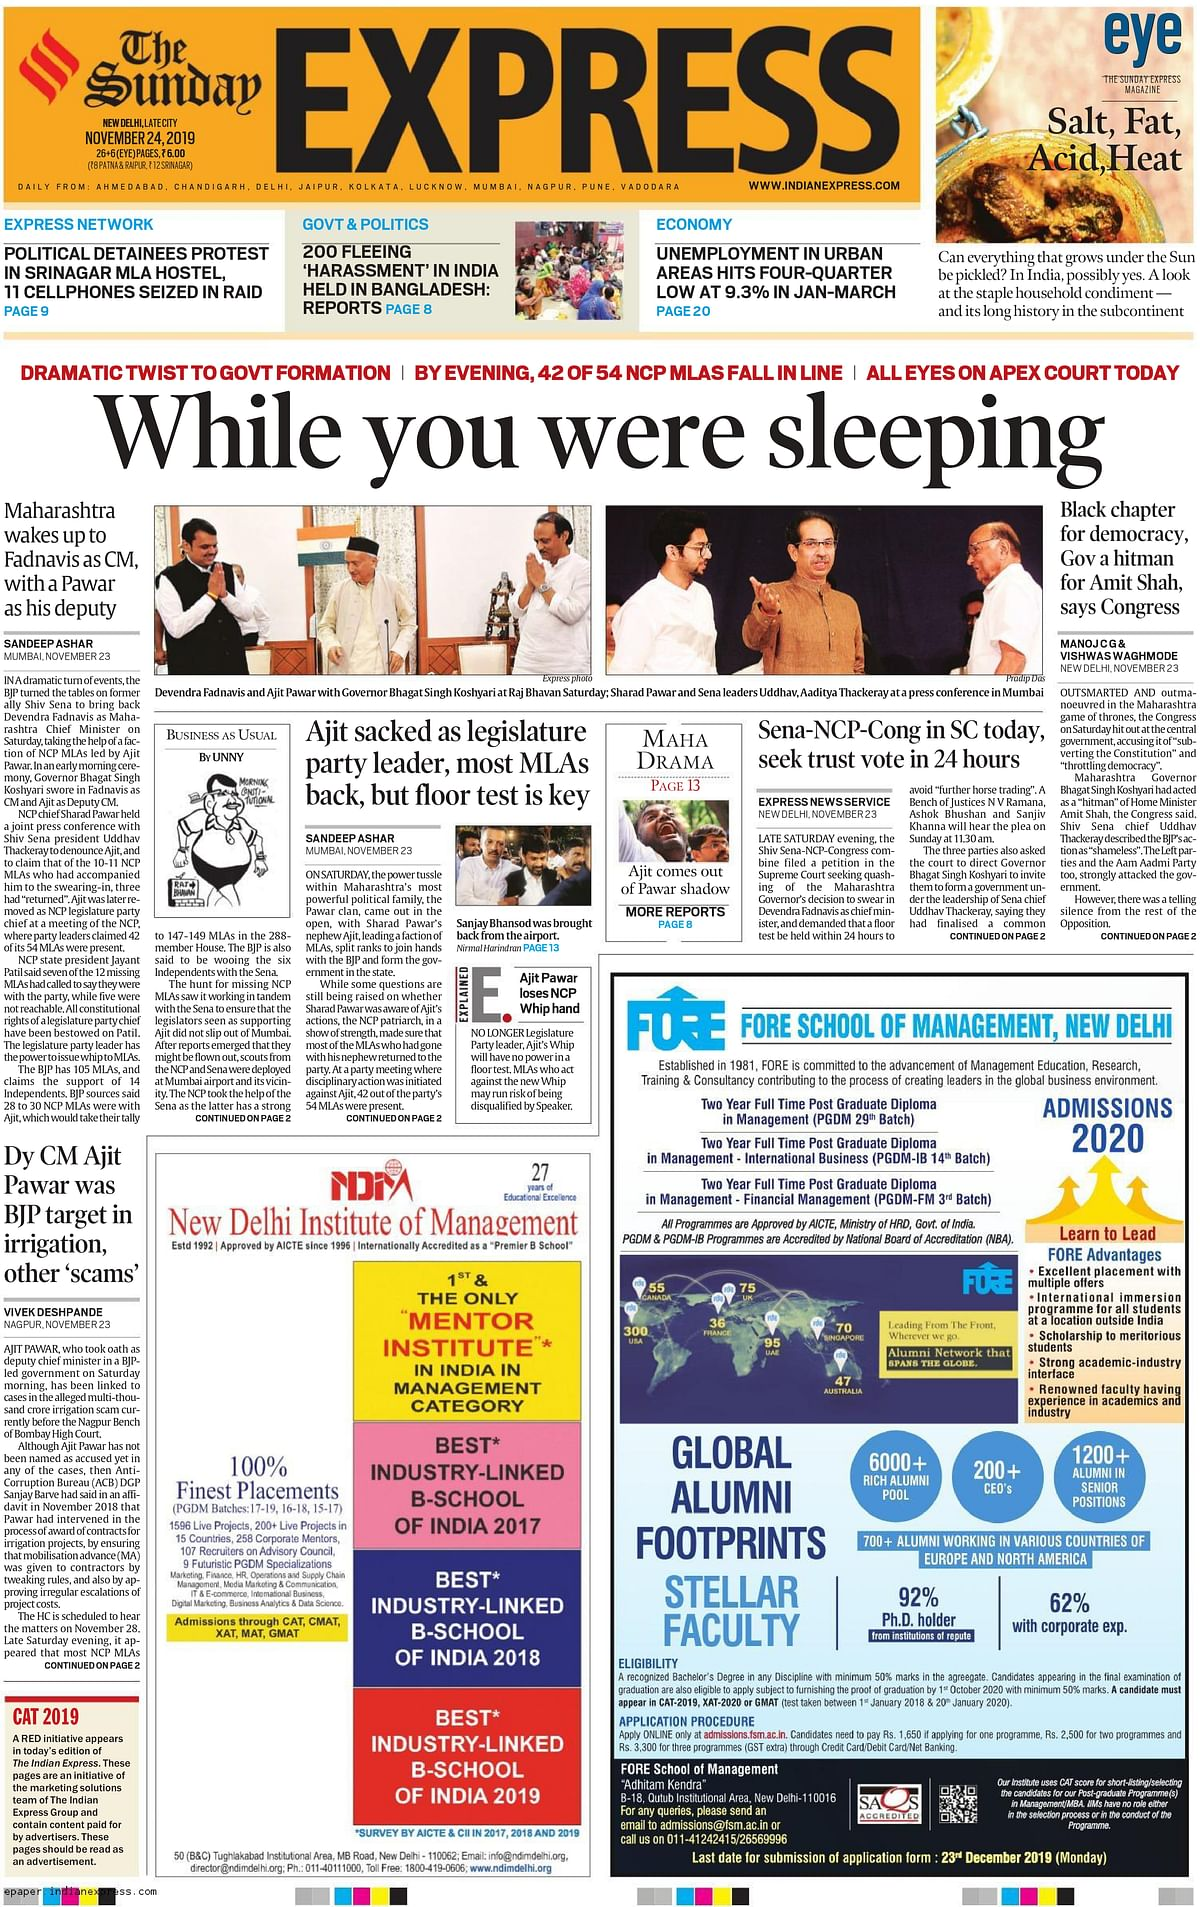 The headline of <i>The Indian Express</i> was 'While You Were Sleeping'